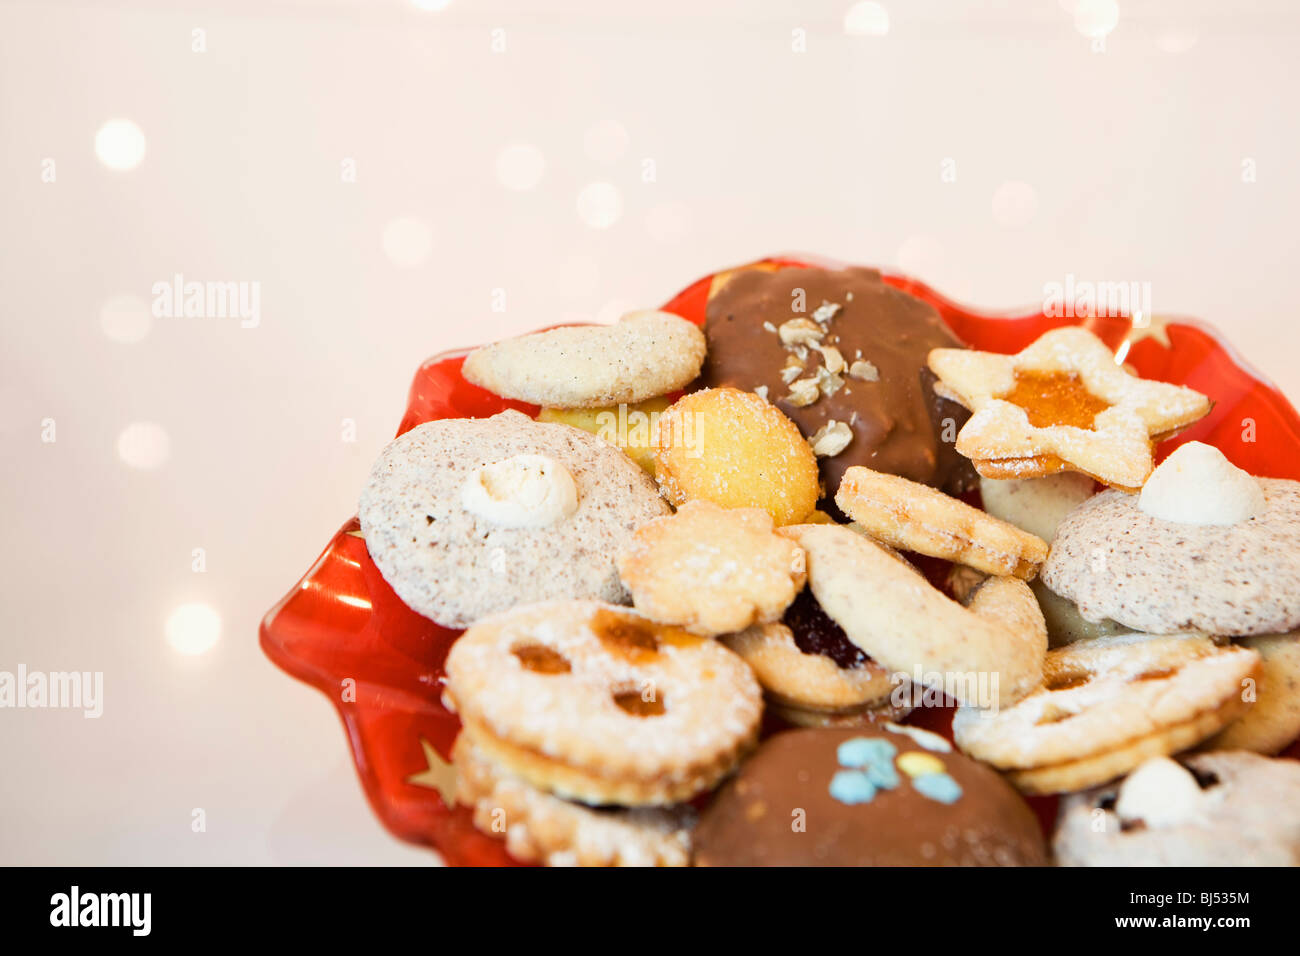 A plate of cookies - Stock Image